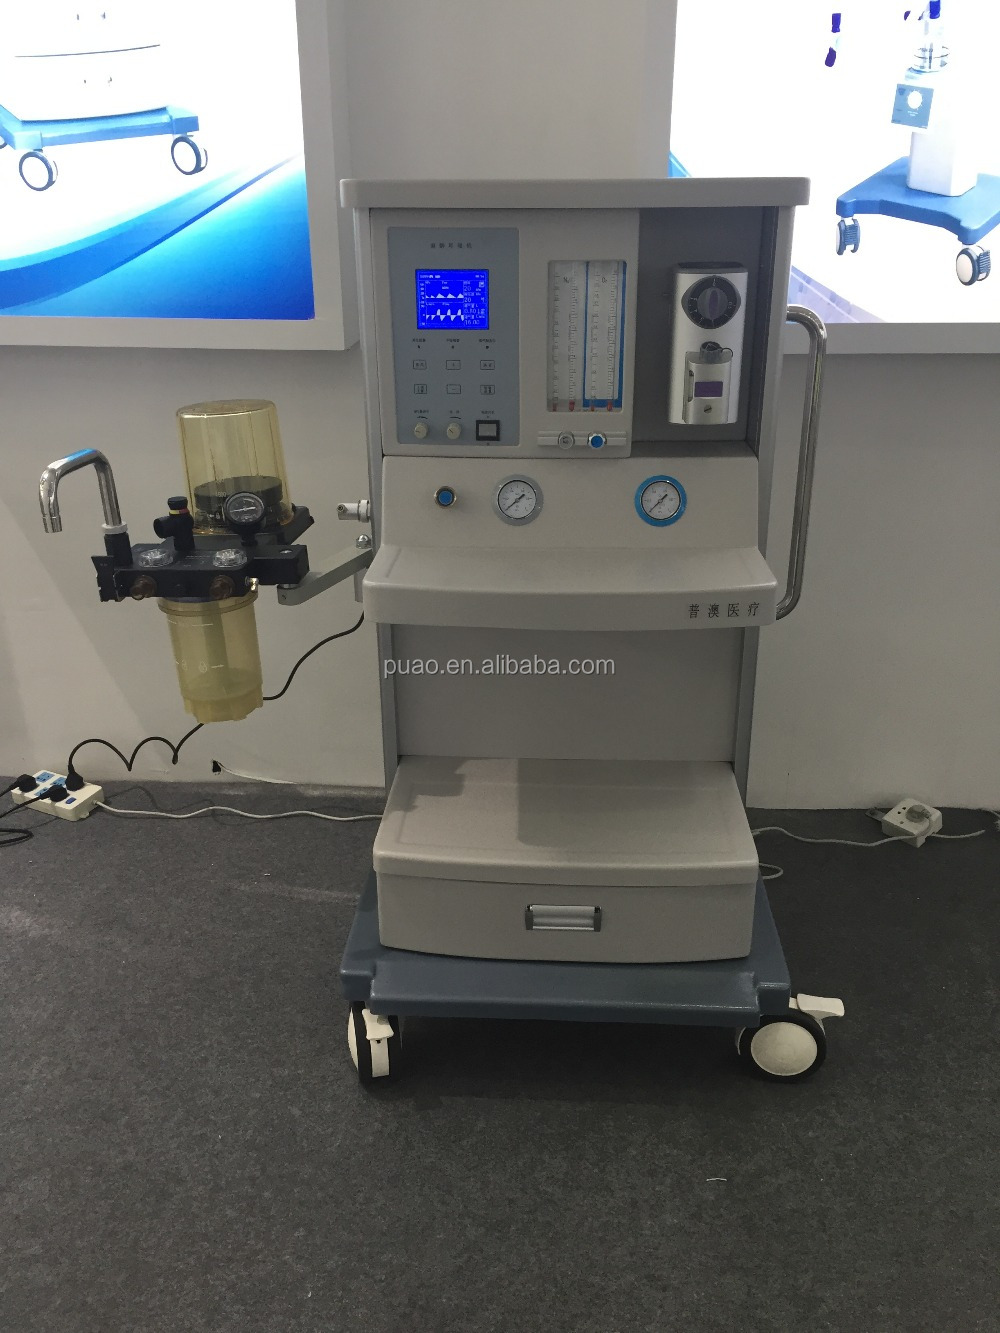 Electronic Medical Instruments : Hot selling electronic medical equipment anesthesia device